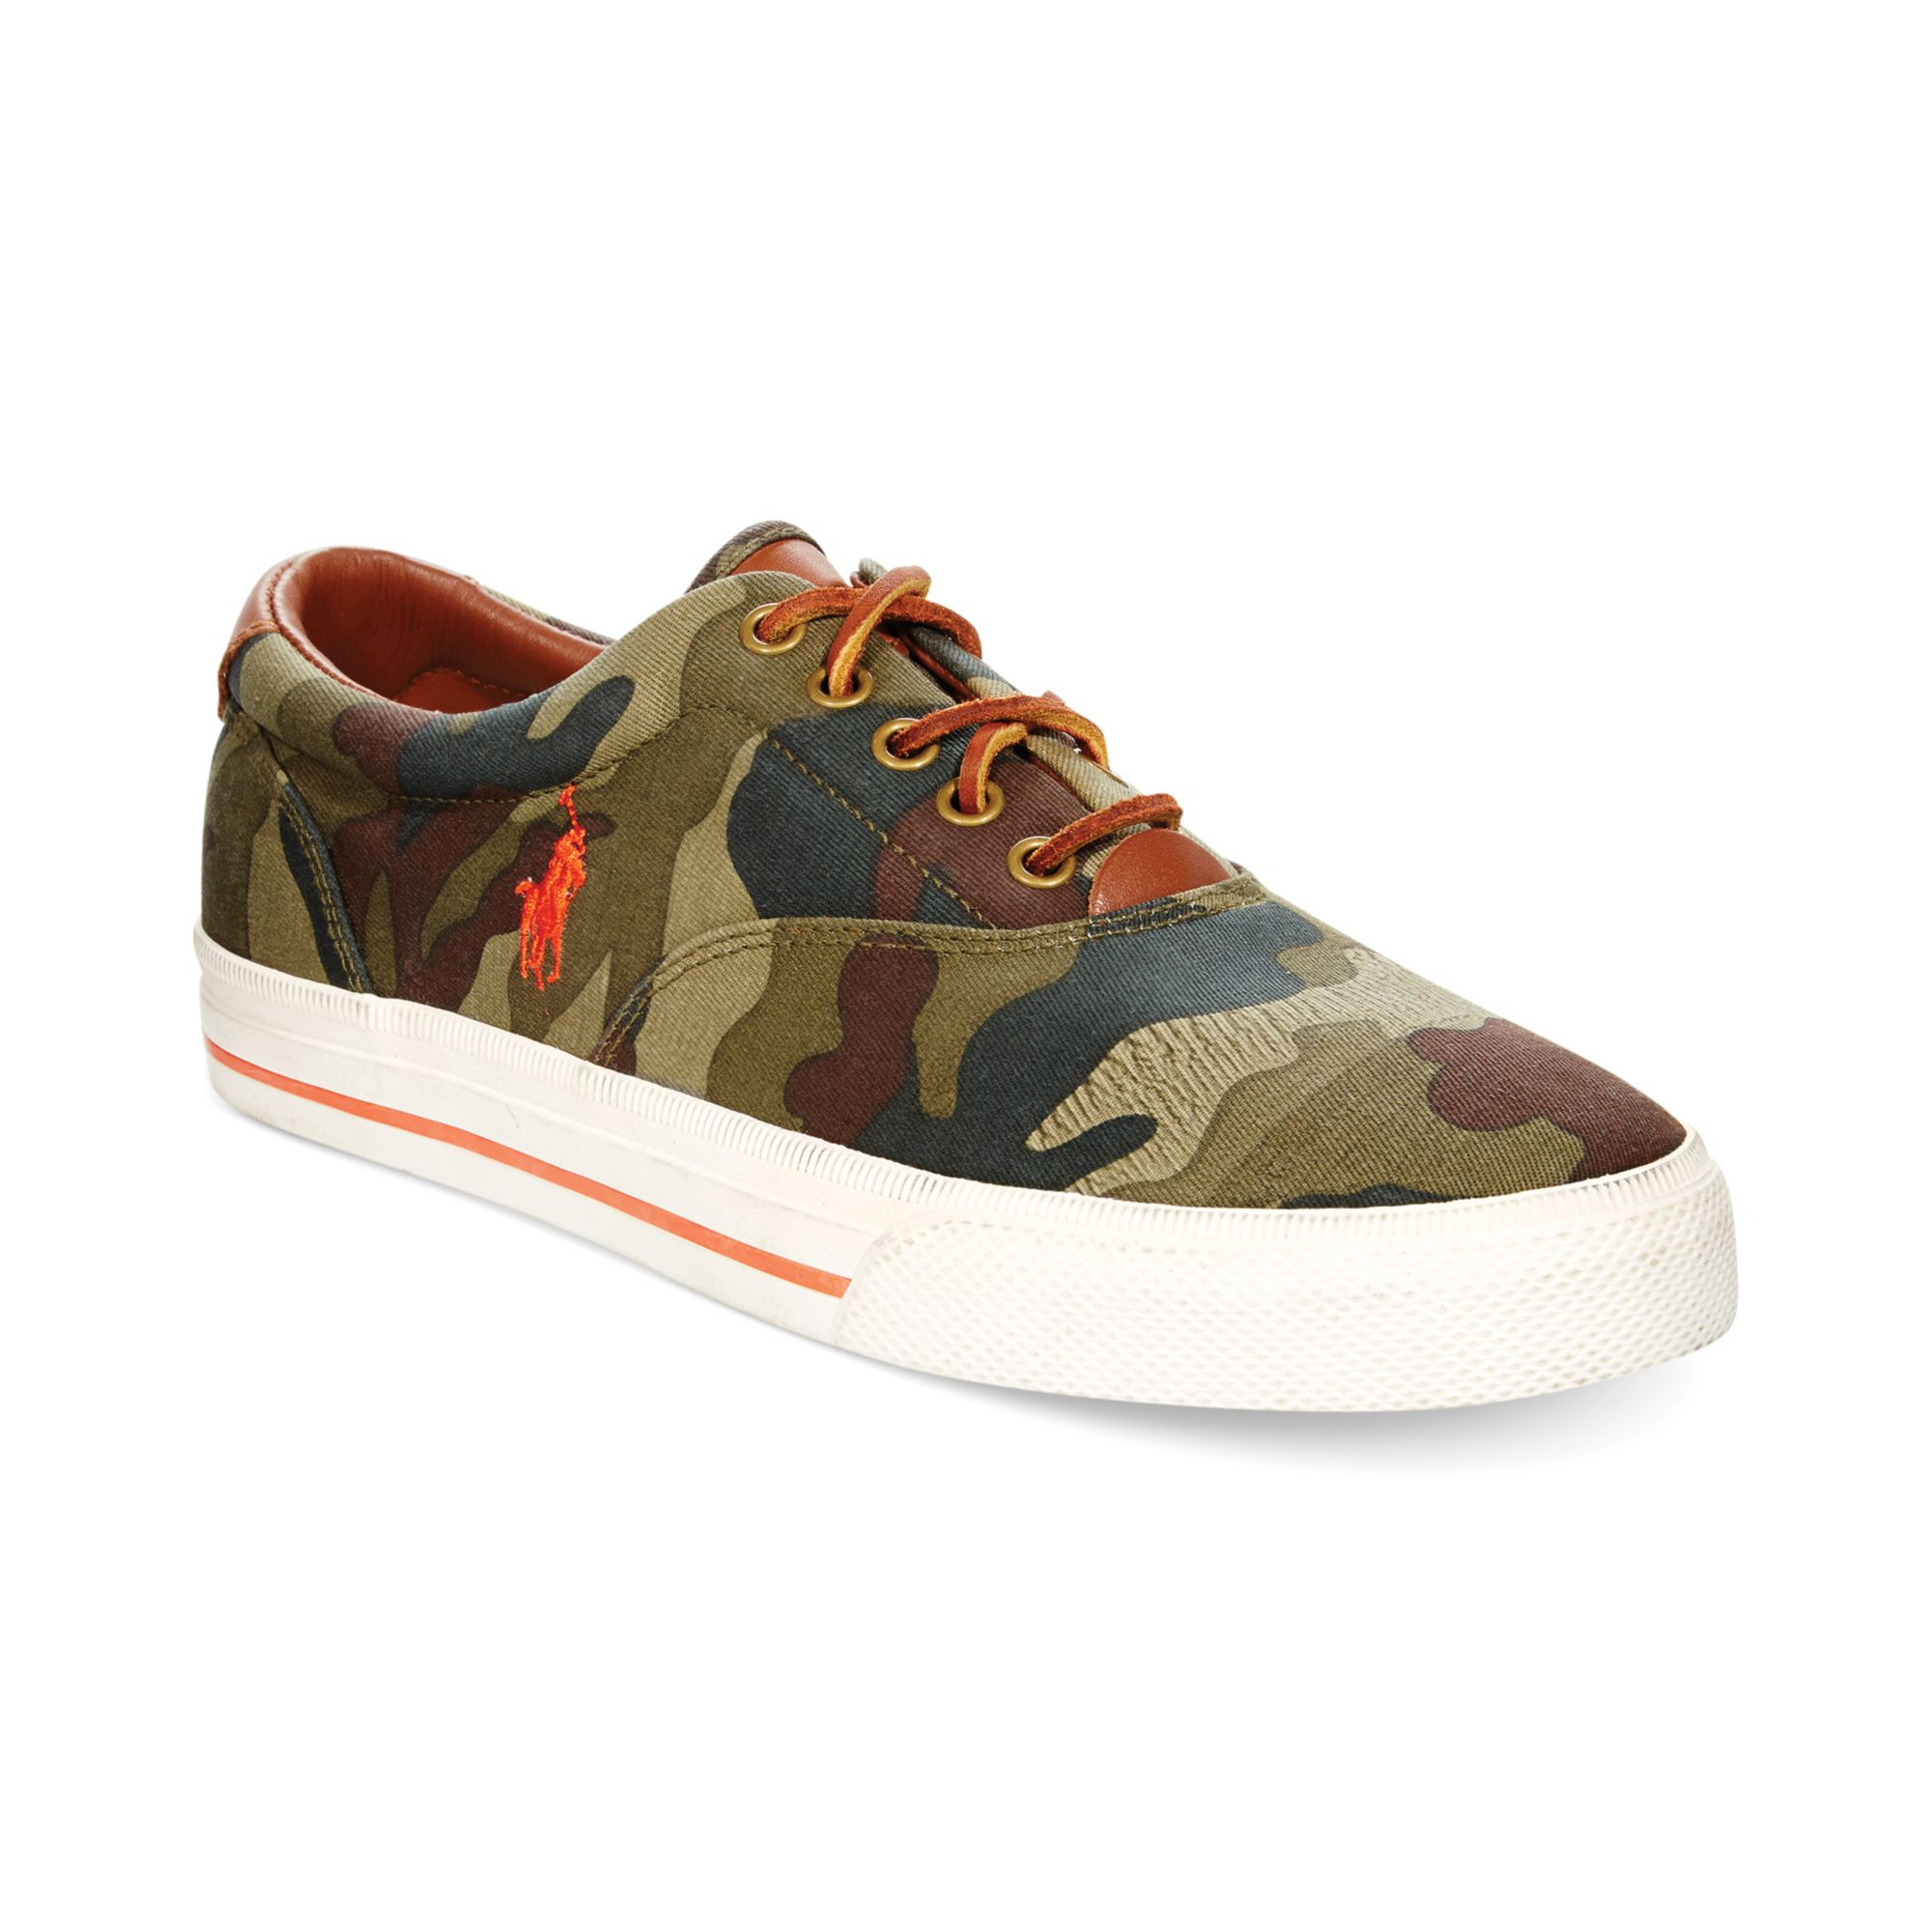 ralph lauren polo vaughn camo sneakers in green for men lyst. Black Bedroom Furniture Sets. Home Design Ideas